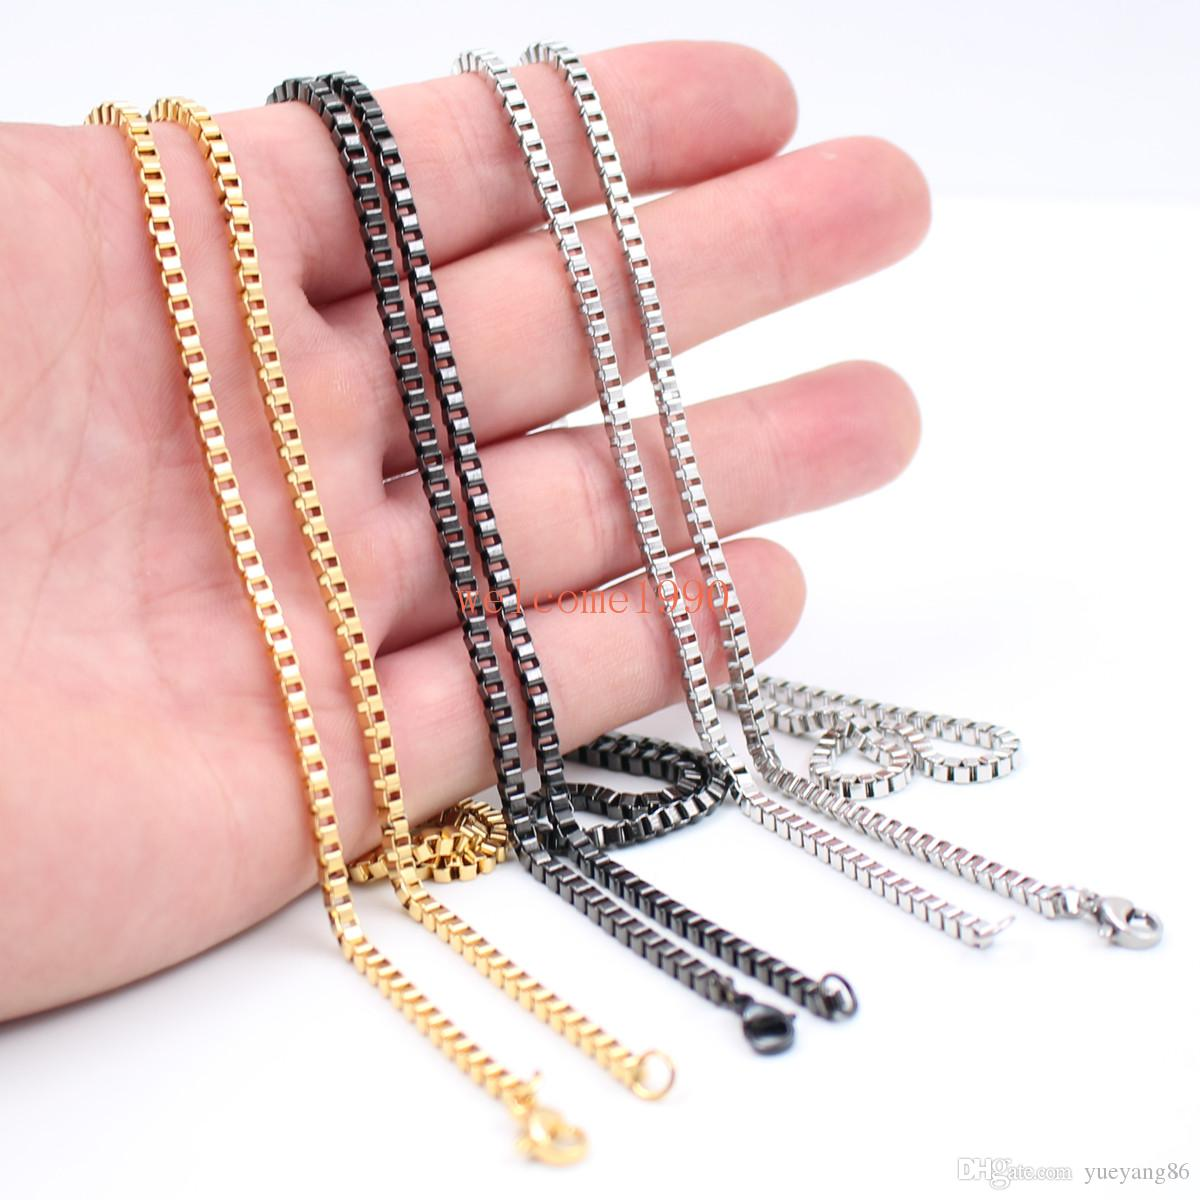 5pcs lot Wholesale 2.4mm Box Chain Necklace Stainless Steel Men's Women Jewelry Silver / gold / black 18 inch-32 inch in bulk